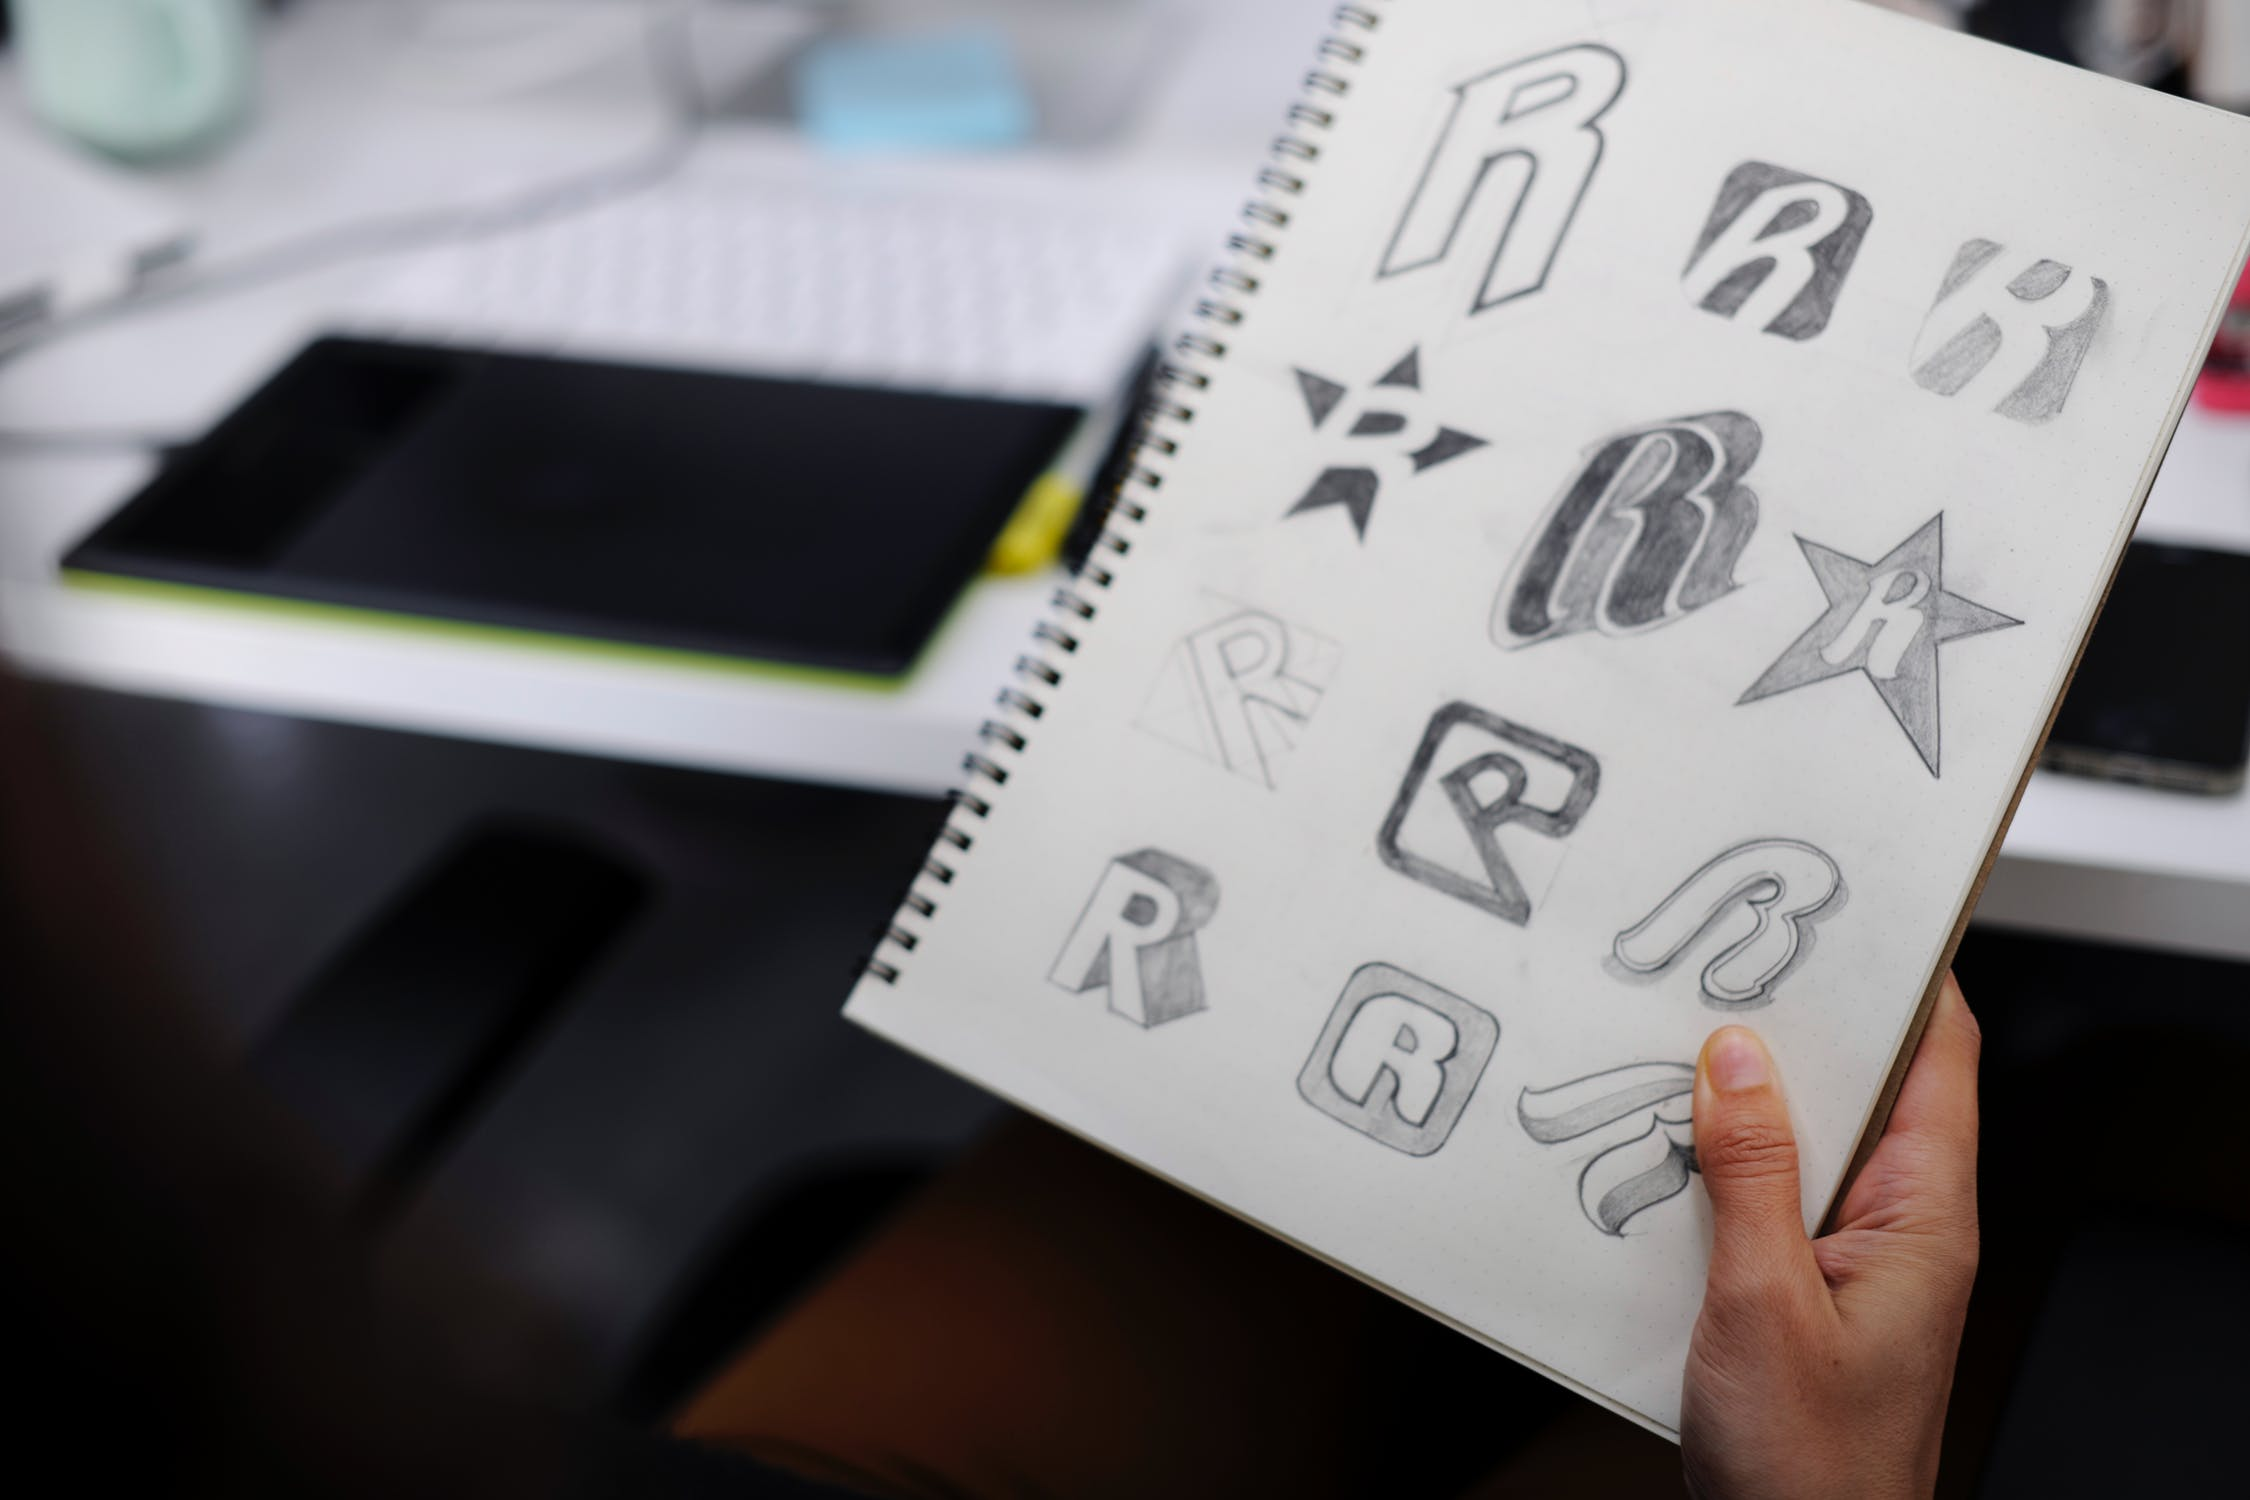 sketches of potential logo